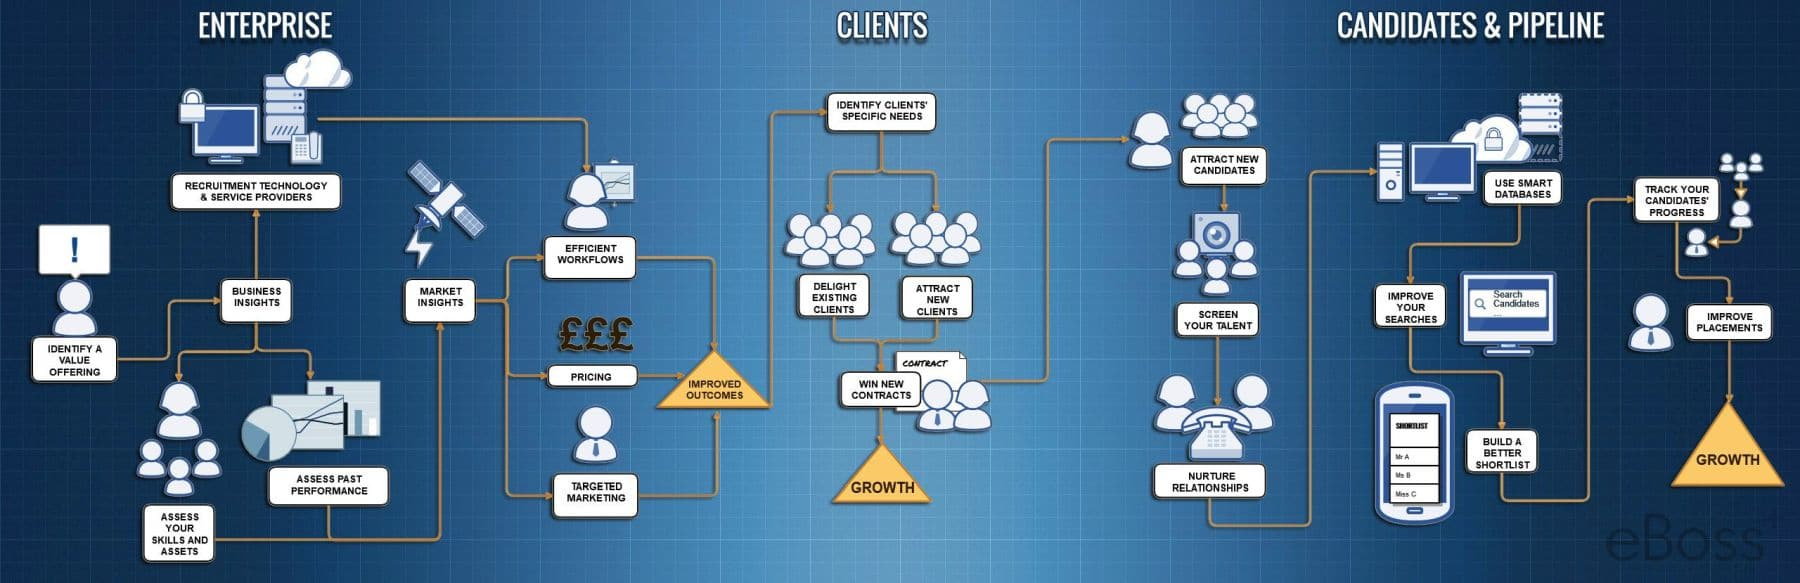 Agency Growth Blueprint